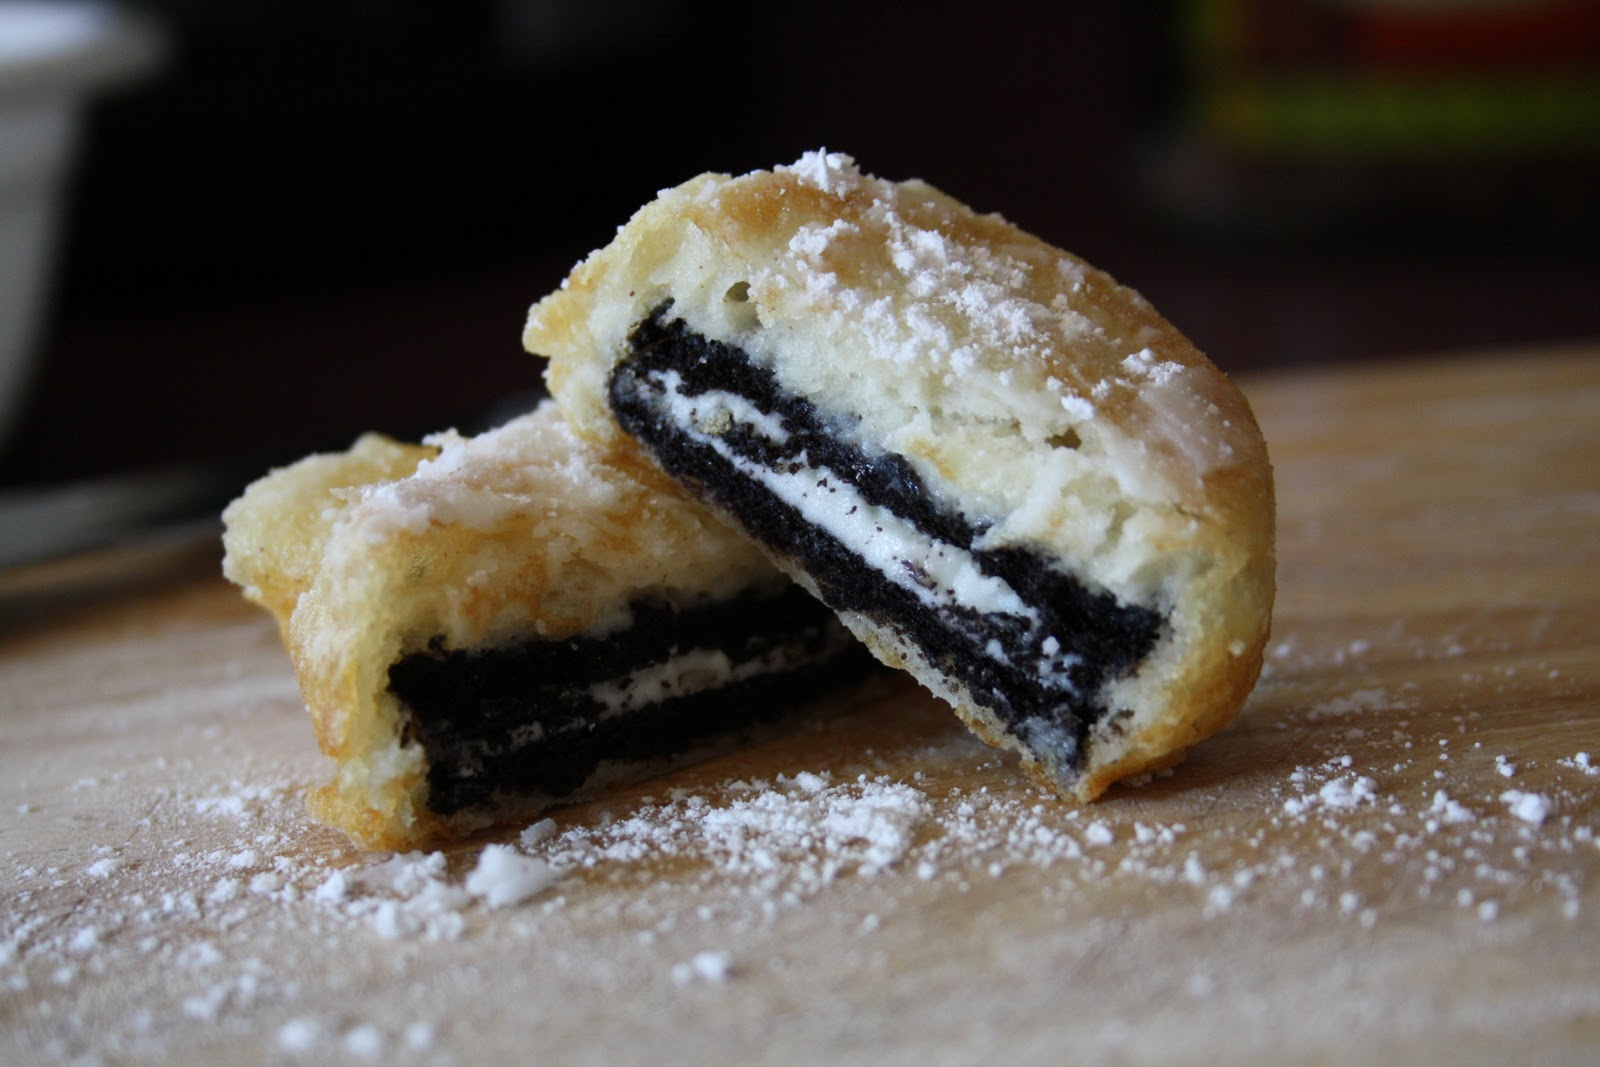 Meals with Michelle: Deep-Fried Oreos